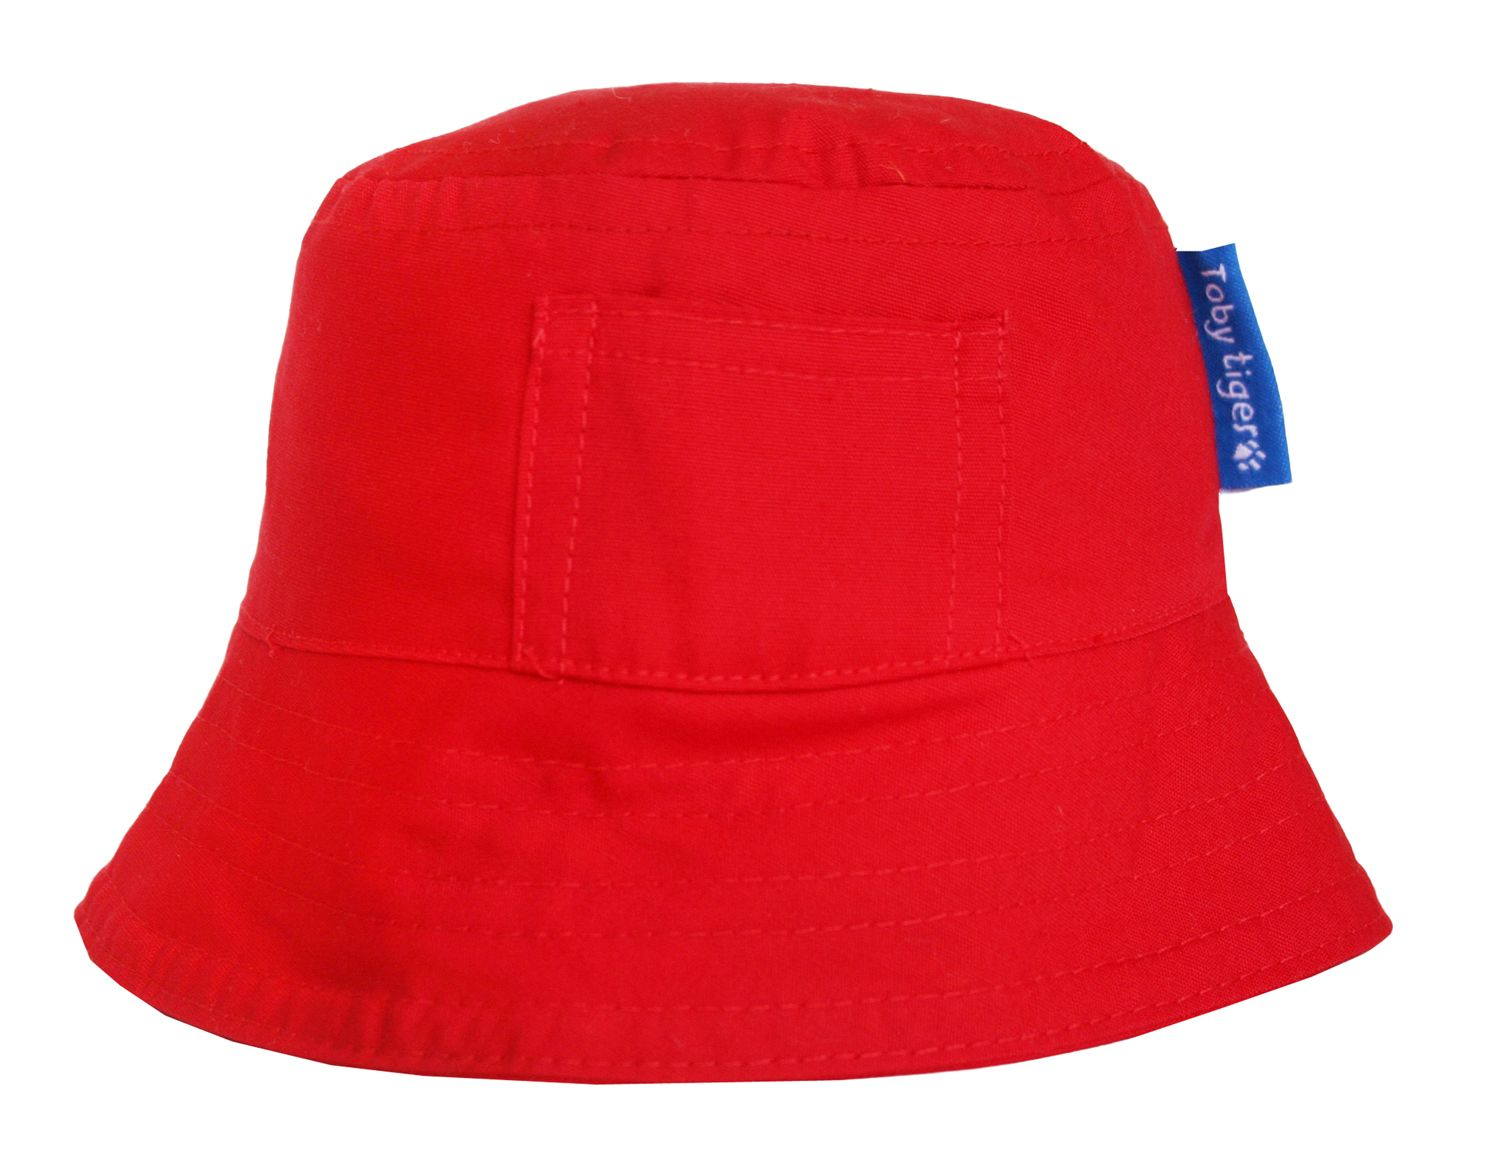 Toby Tiger Boys canvas sunhat in red, Red